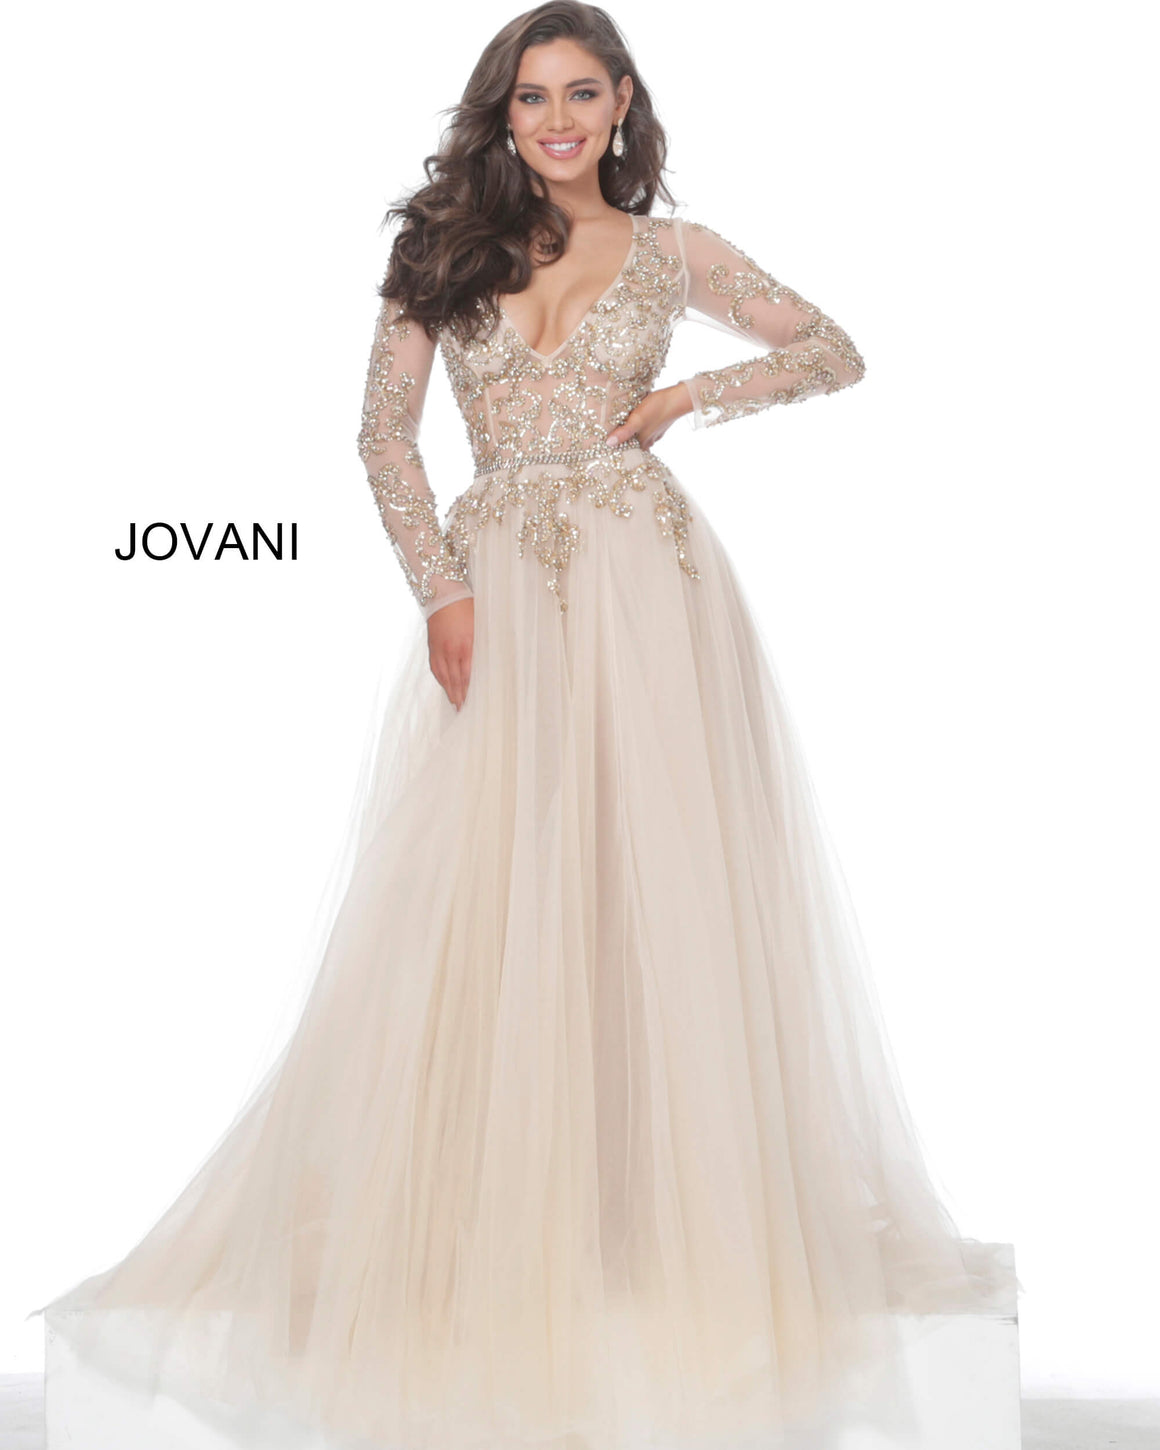 Jovani 00638 Champagne Gold Sheer Beaded Bodice Evening Gown